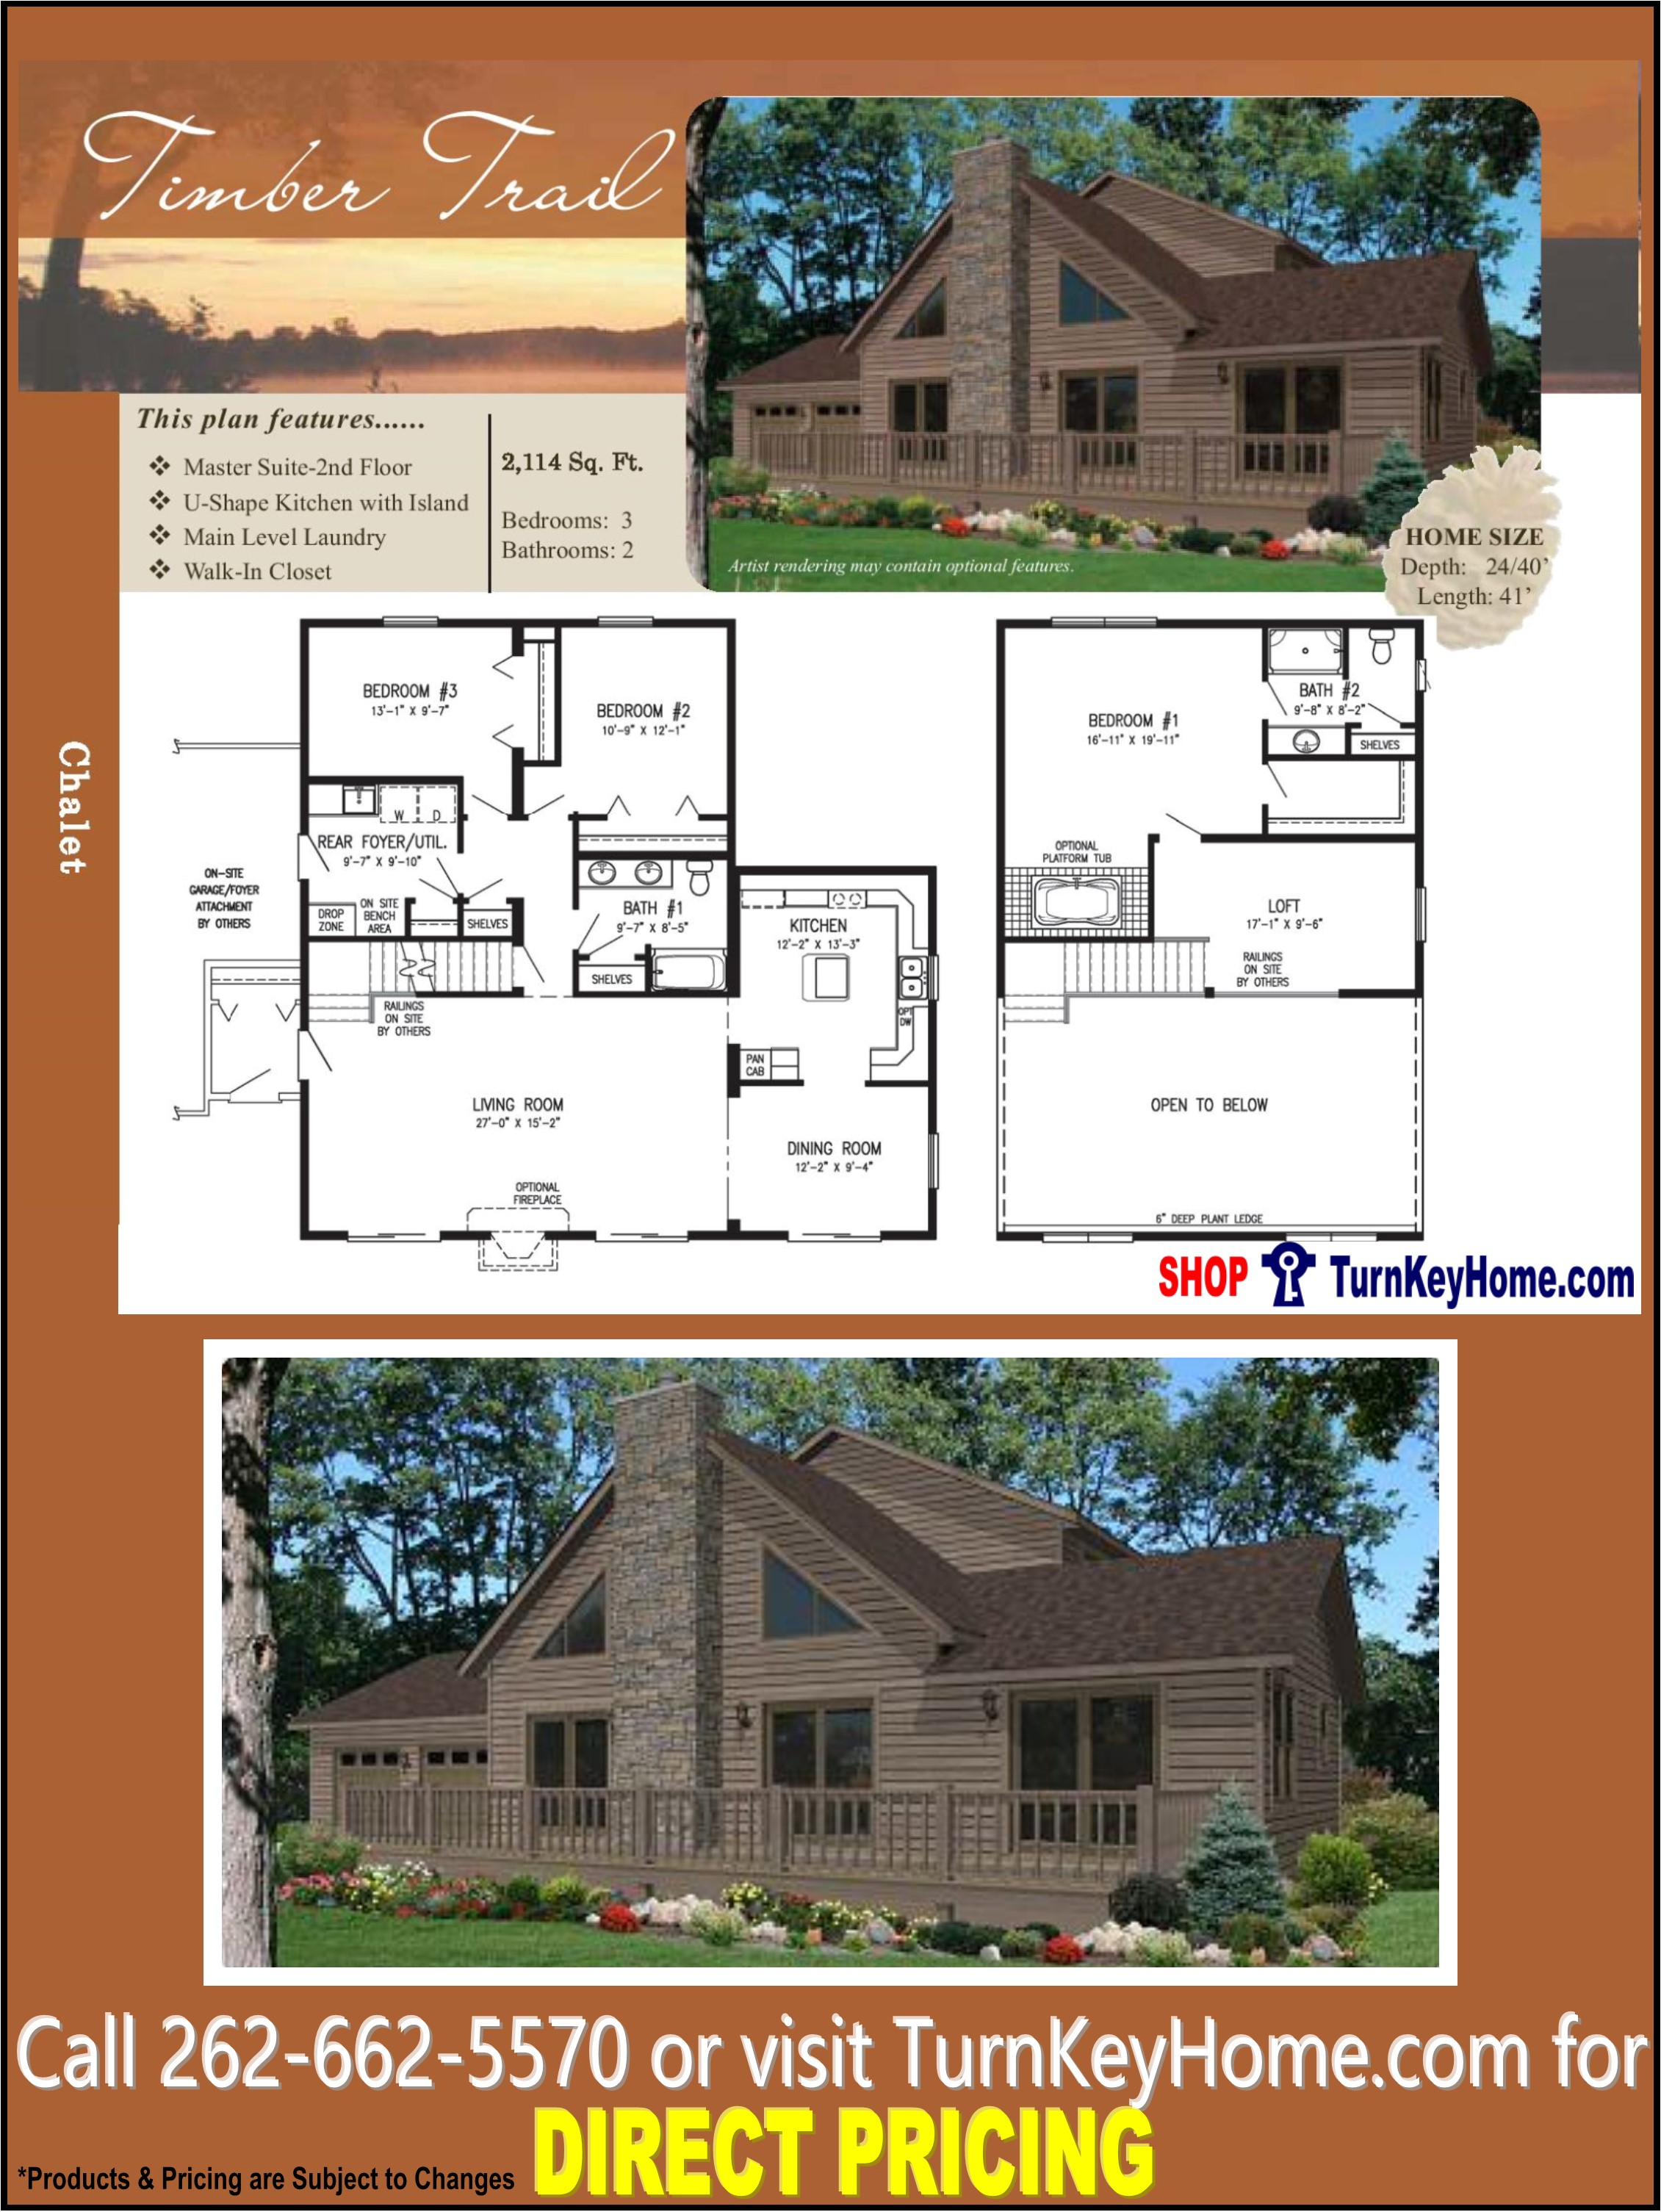 TIMBER TRAIL Chalet Home 3 Bed 2 Bath Plan 2114 SF Priced From